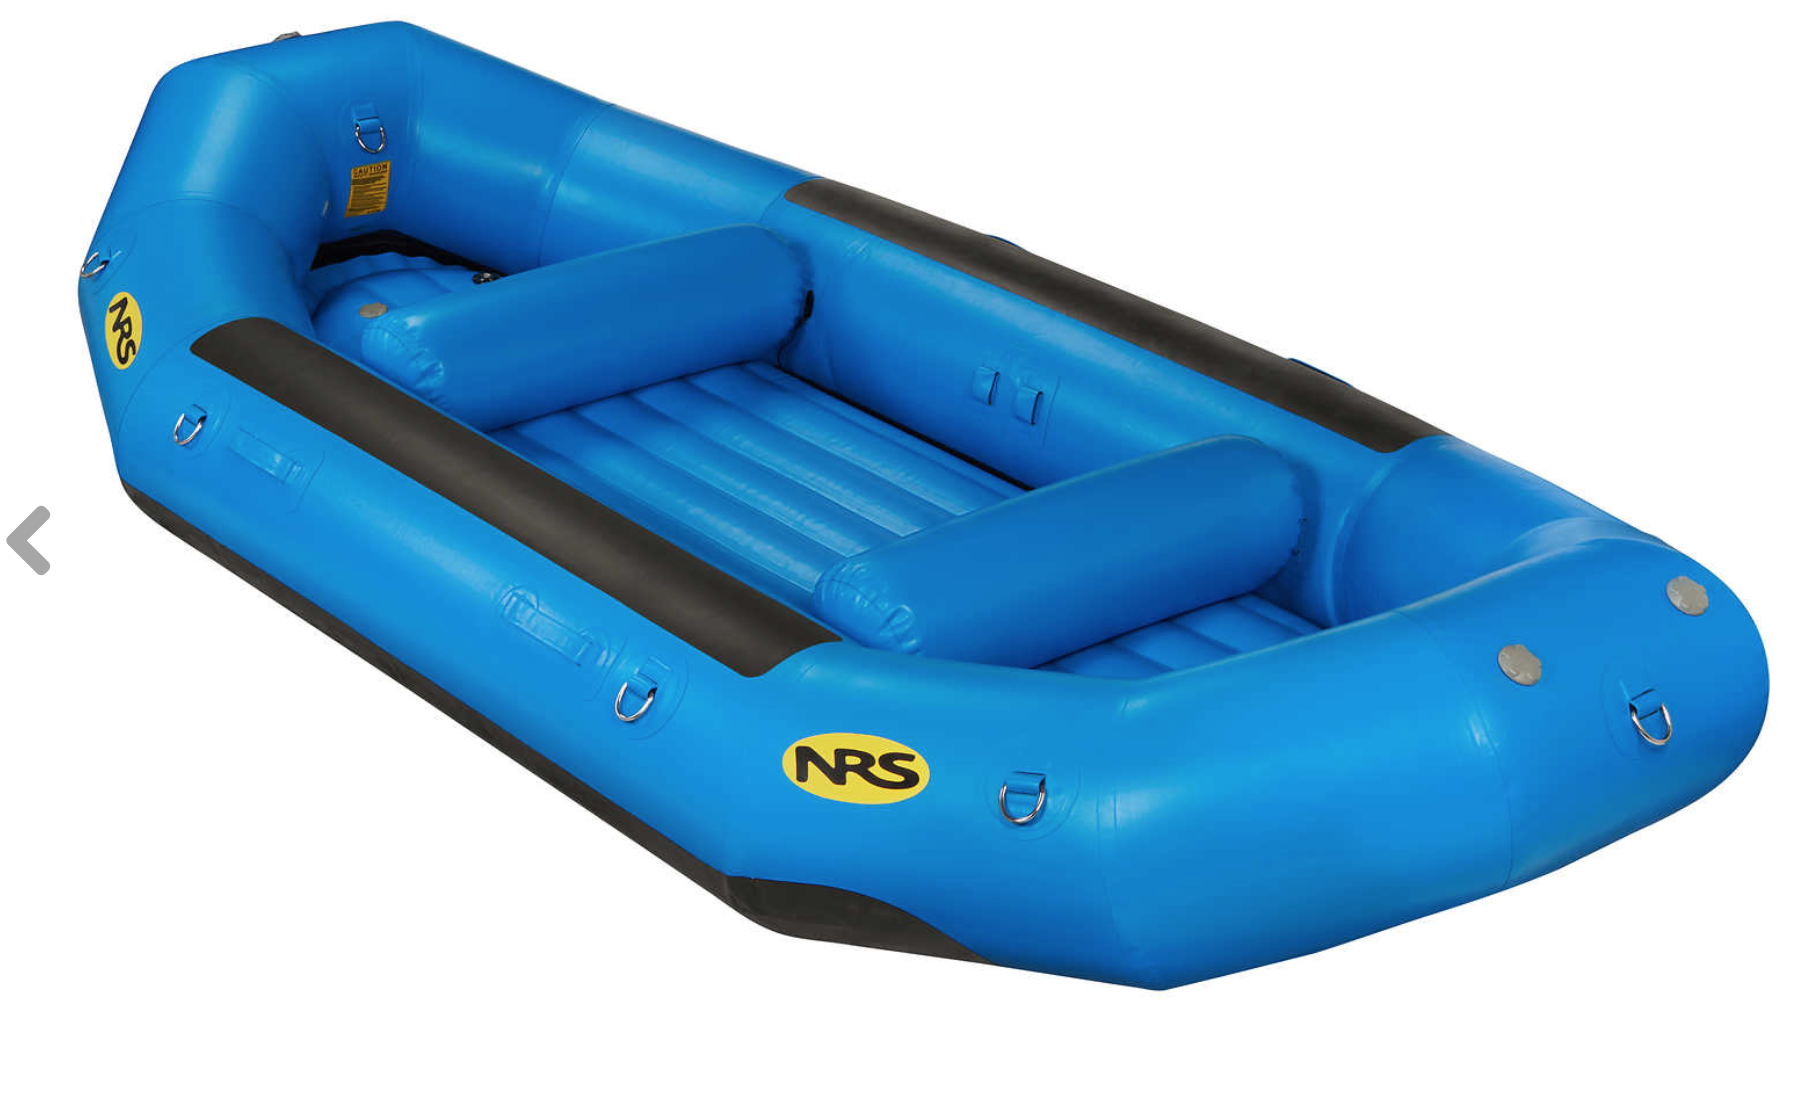 The NRS Otter 130 Whitewater Raft. Source:  https://www.nrs.com/product/1136/nrs-otter-130-self-bailing-rafts